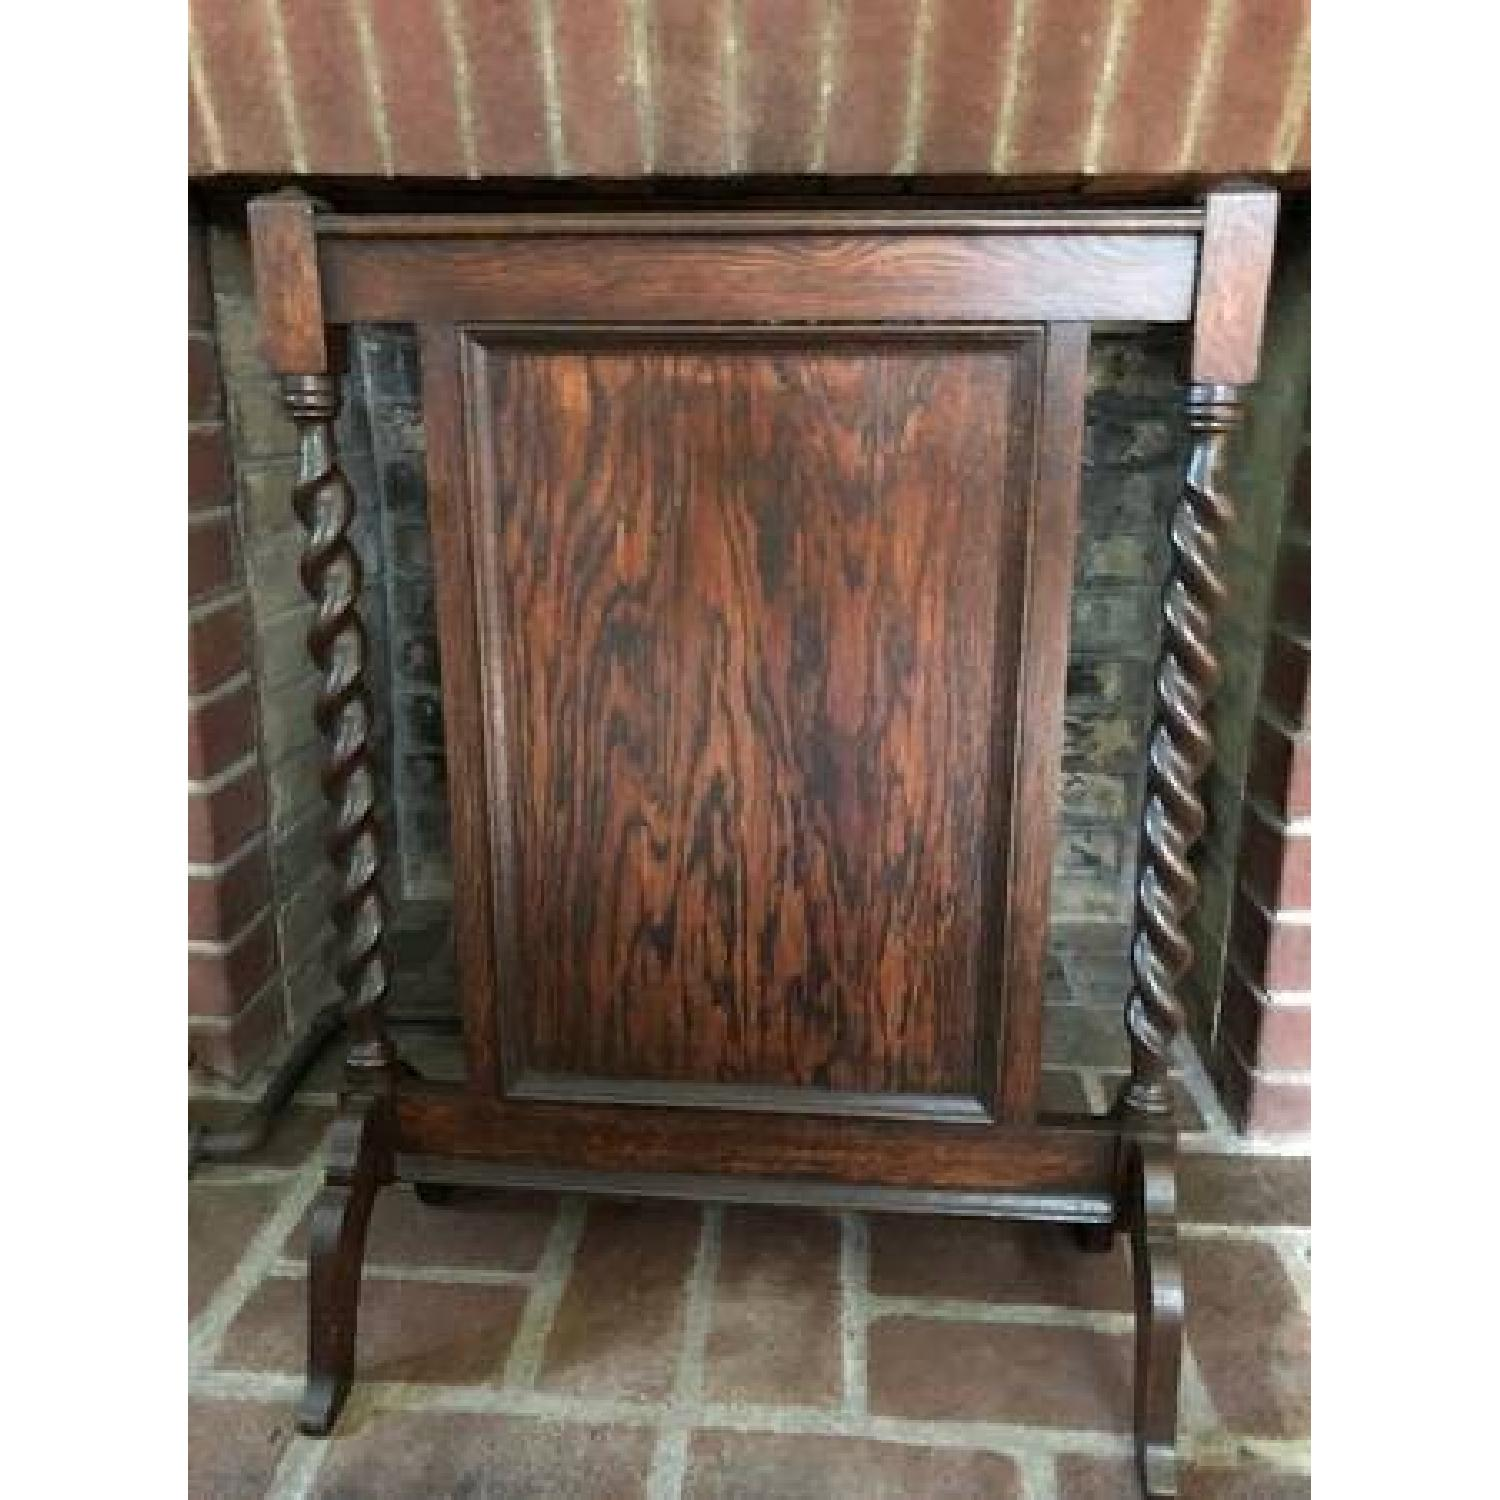 Jacoby Wood Fireplace Stand-3